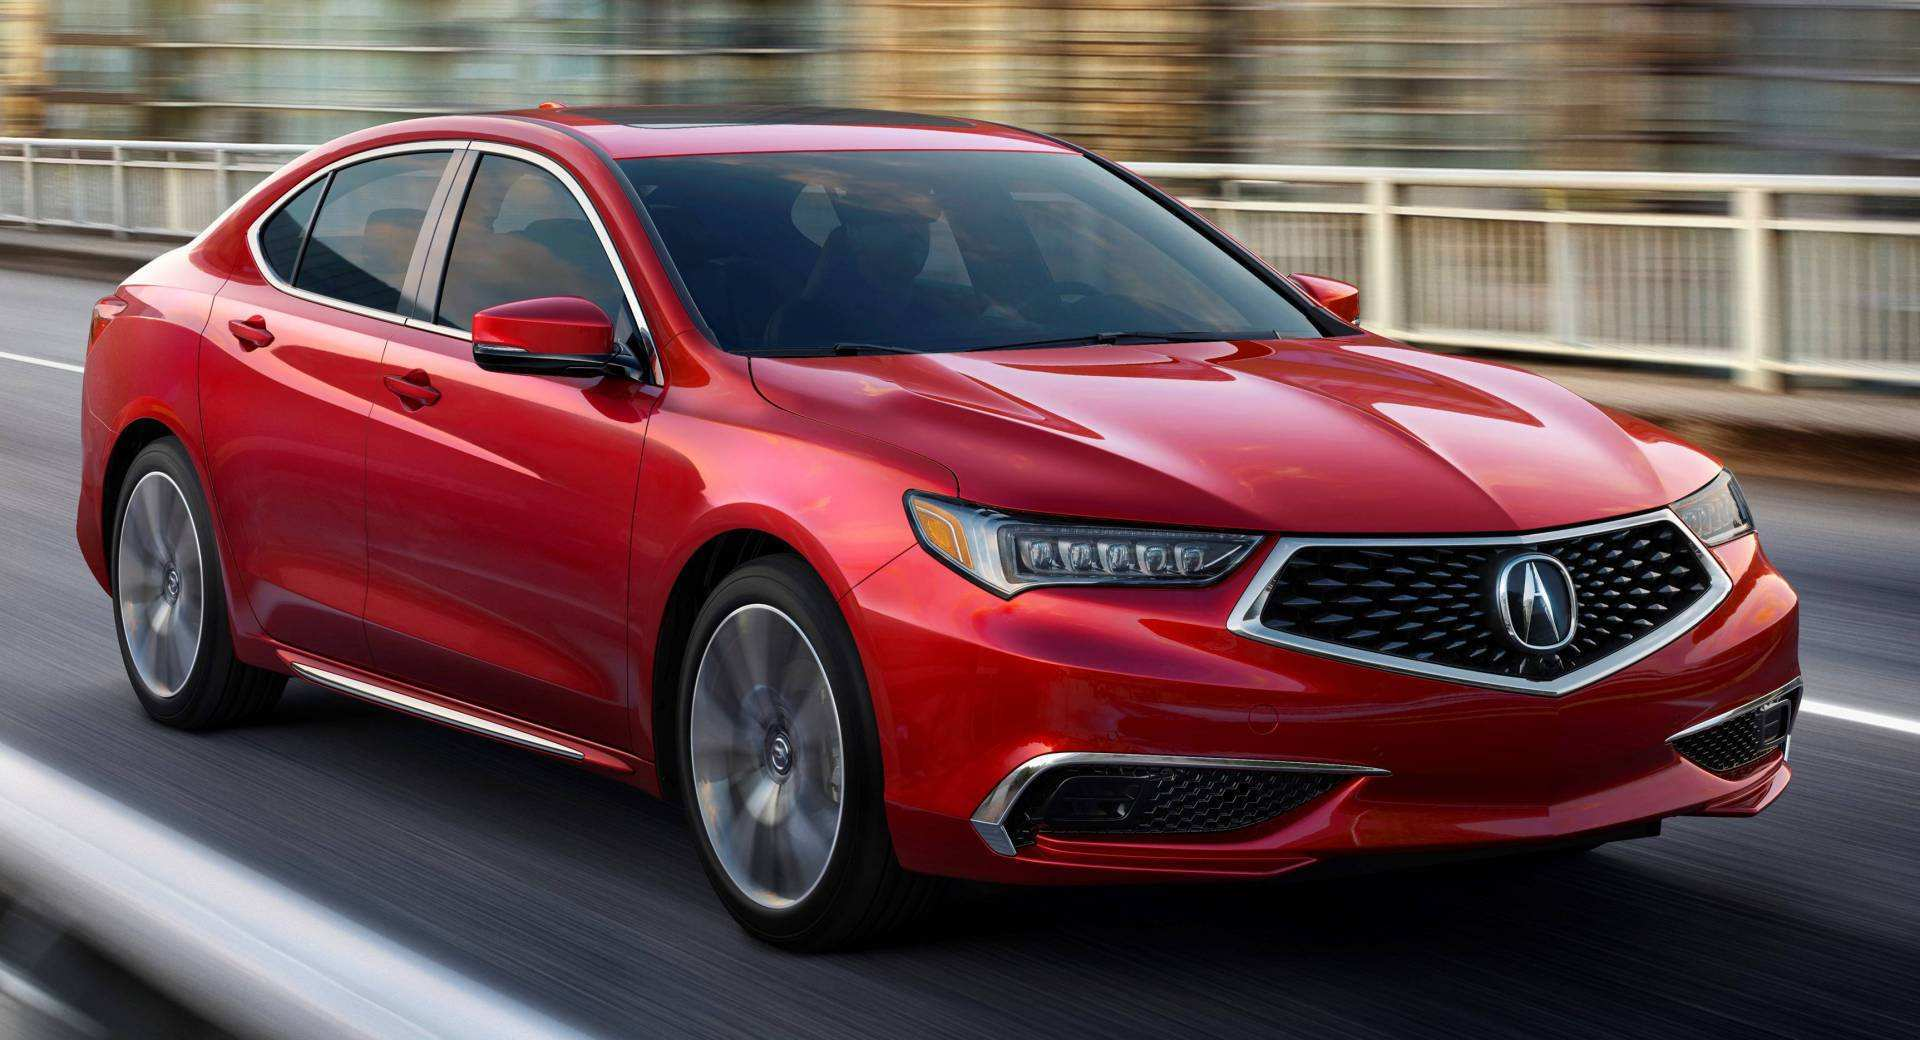 59 Gallery of Acura Legend 2020 Price for Acura Legend 2020